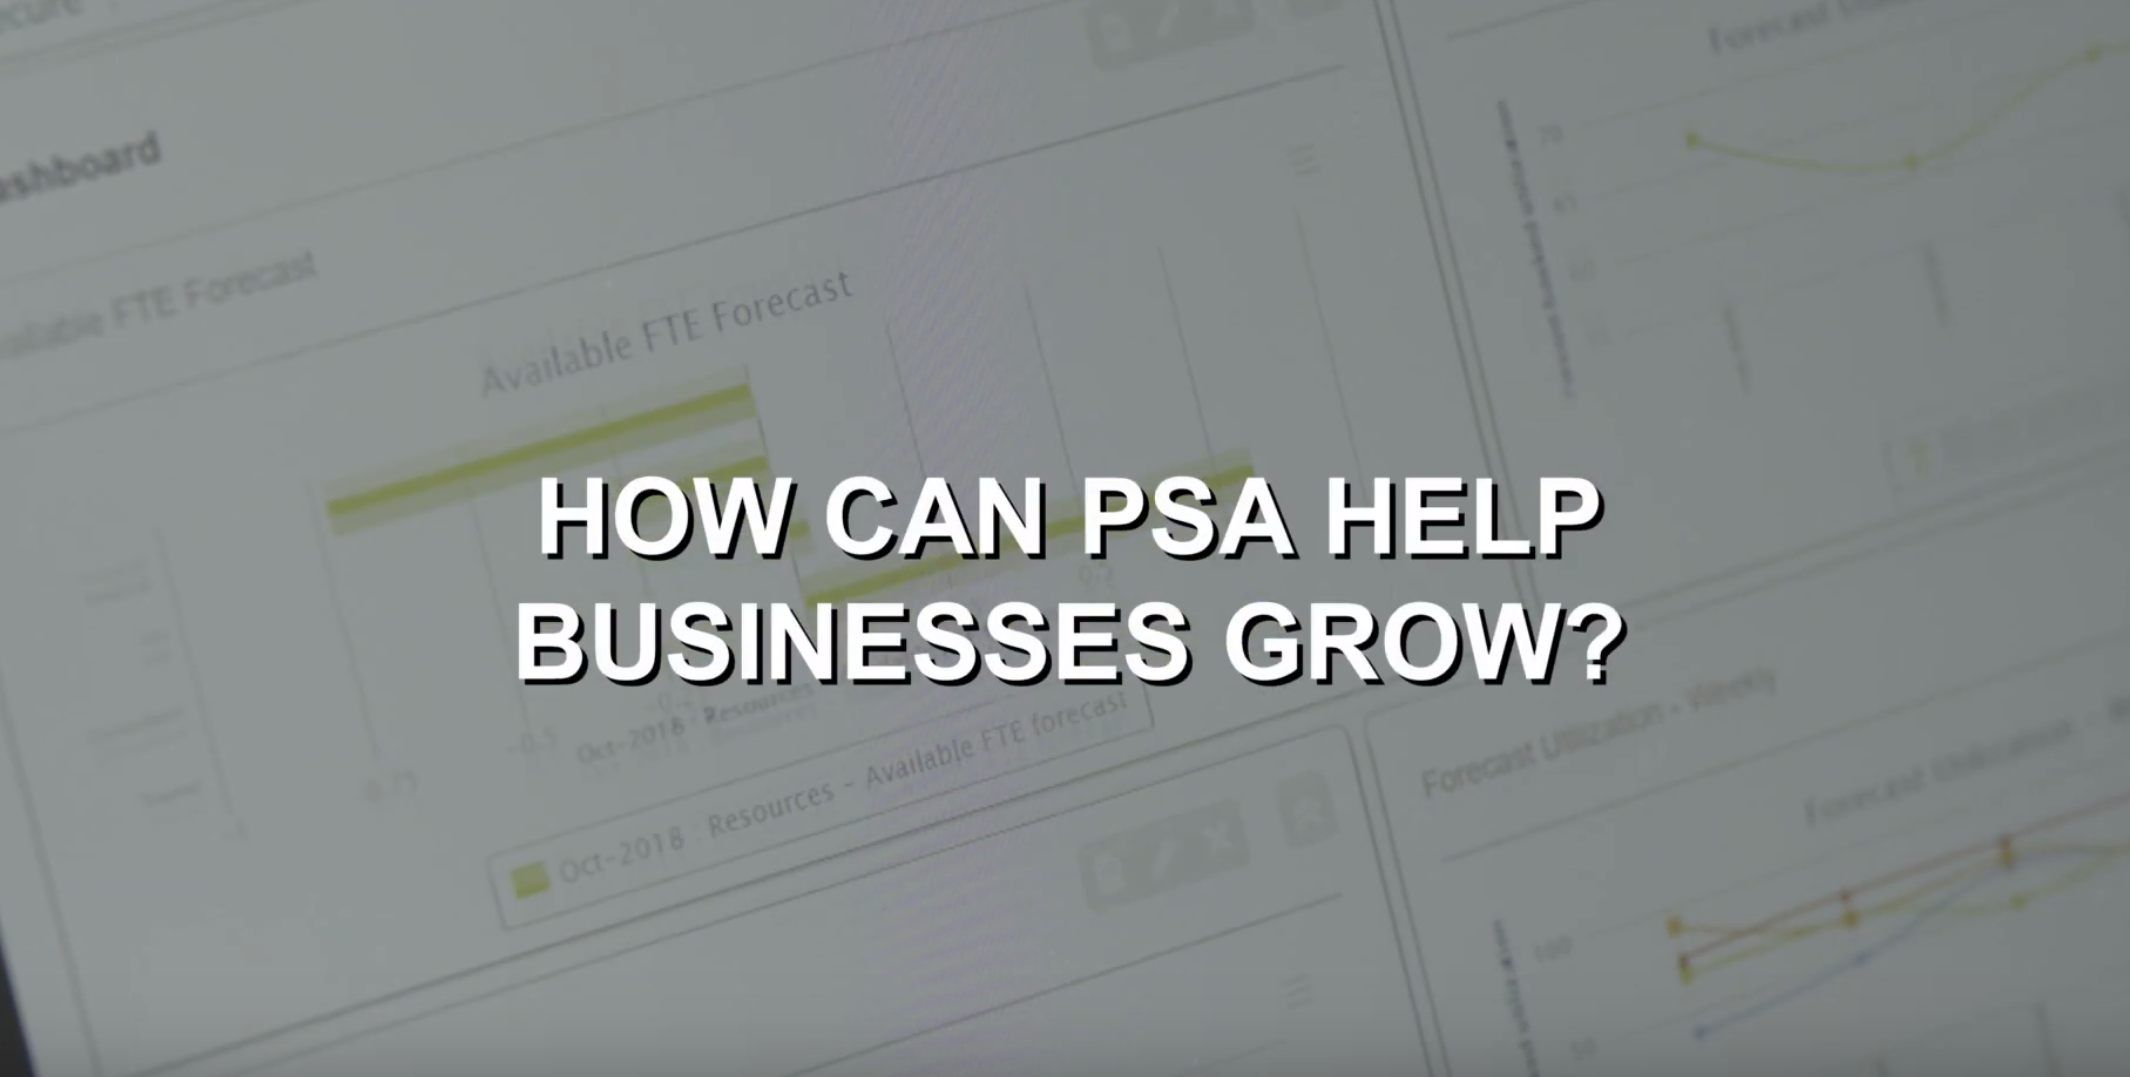 NS-PSA-businesses-grow-help